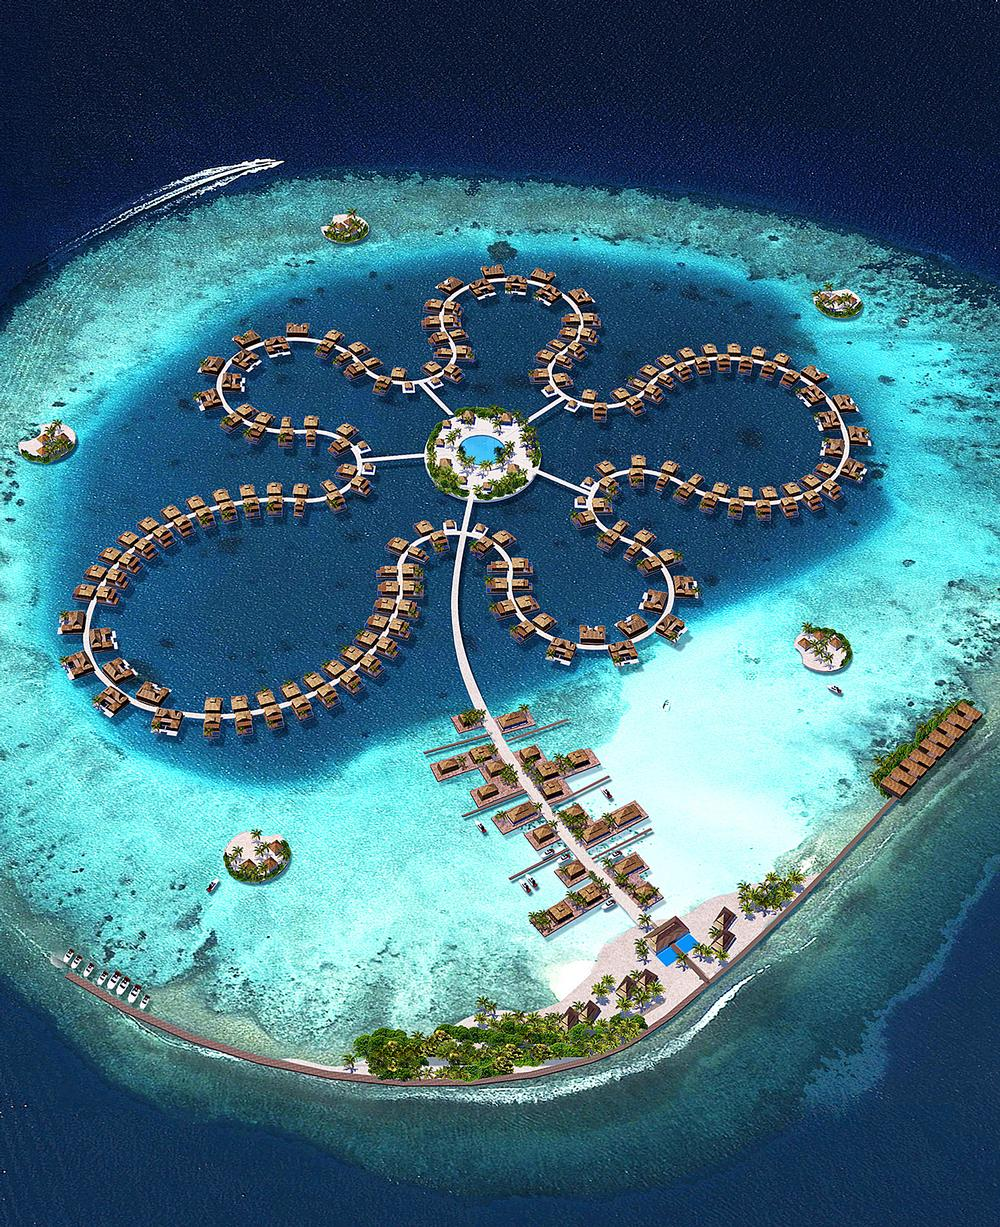 Ocean Flower is part of the Five Lagoons development in the Maldives